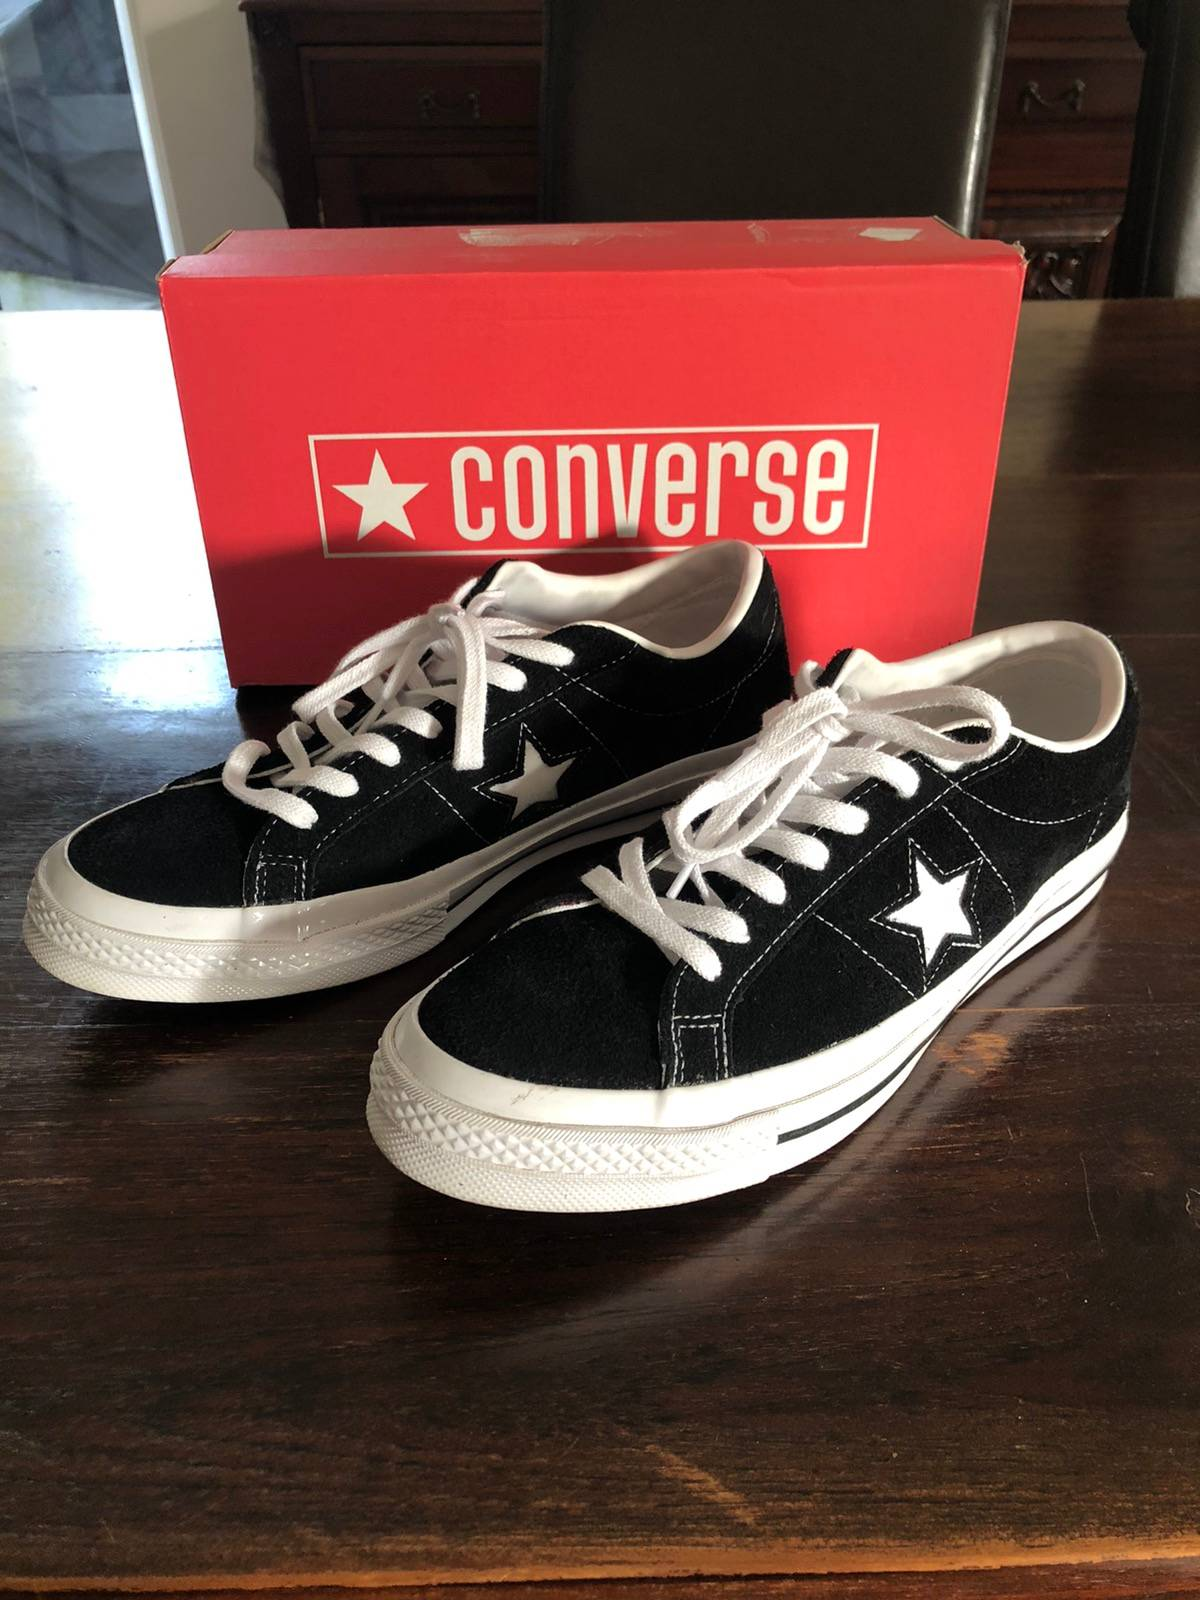 Converse Converse All Star Hi Trainers Black White Recycle